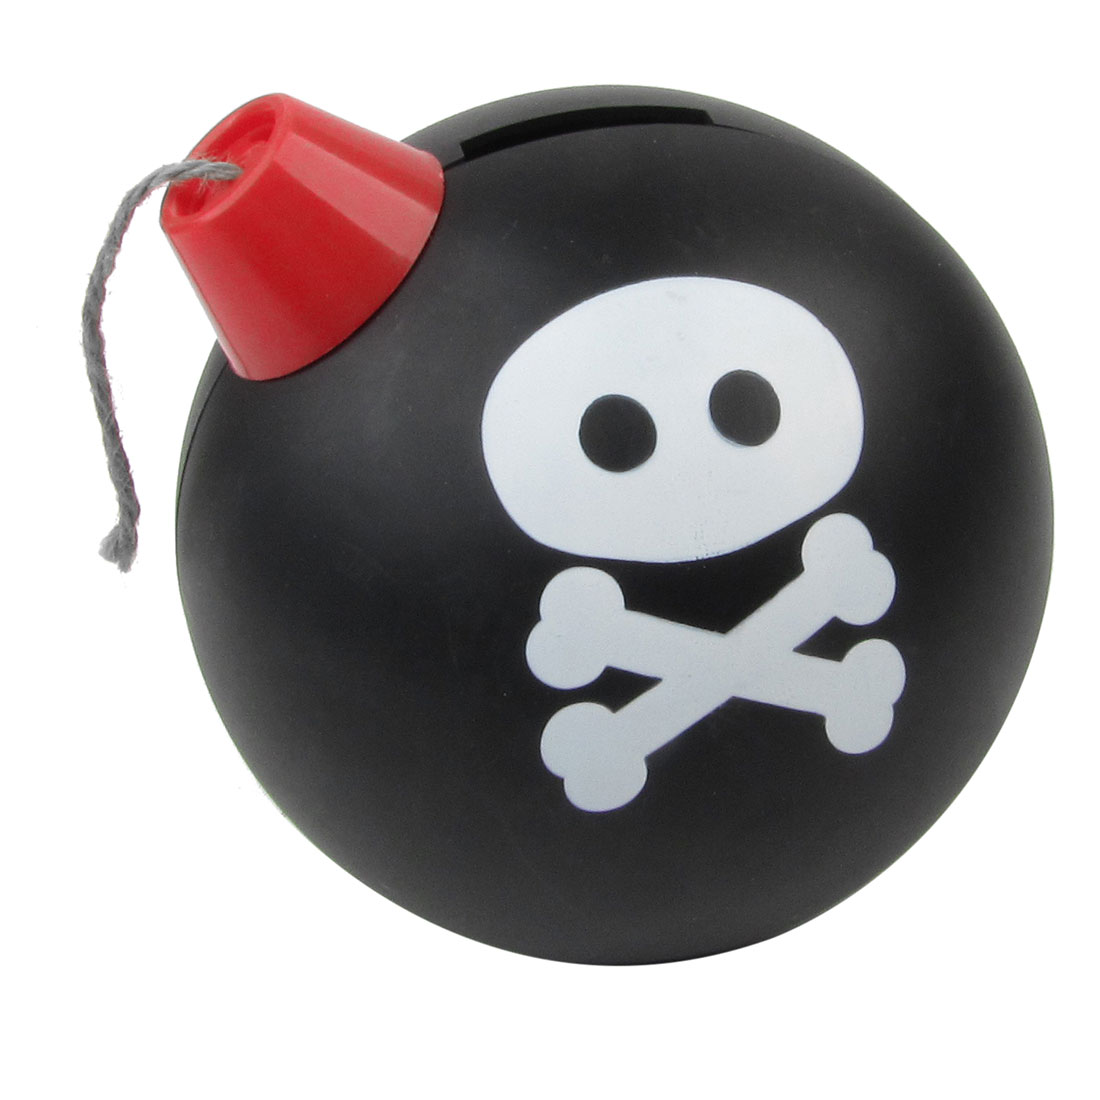 Tricolor Plastic Skull Pattern Bomb Typed Electronic Piggy Bank Gift for Kid